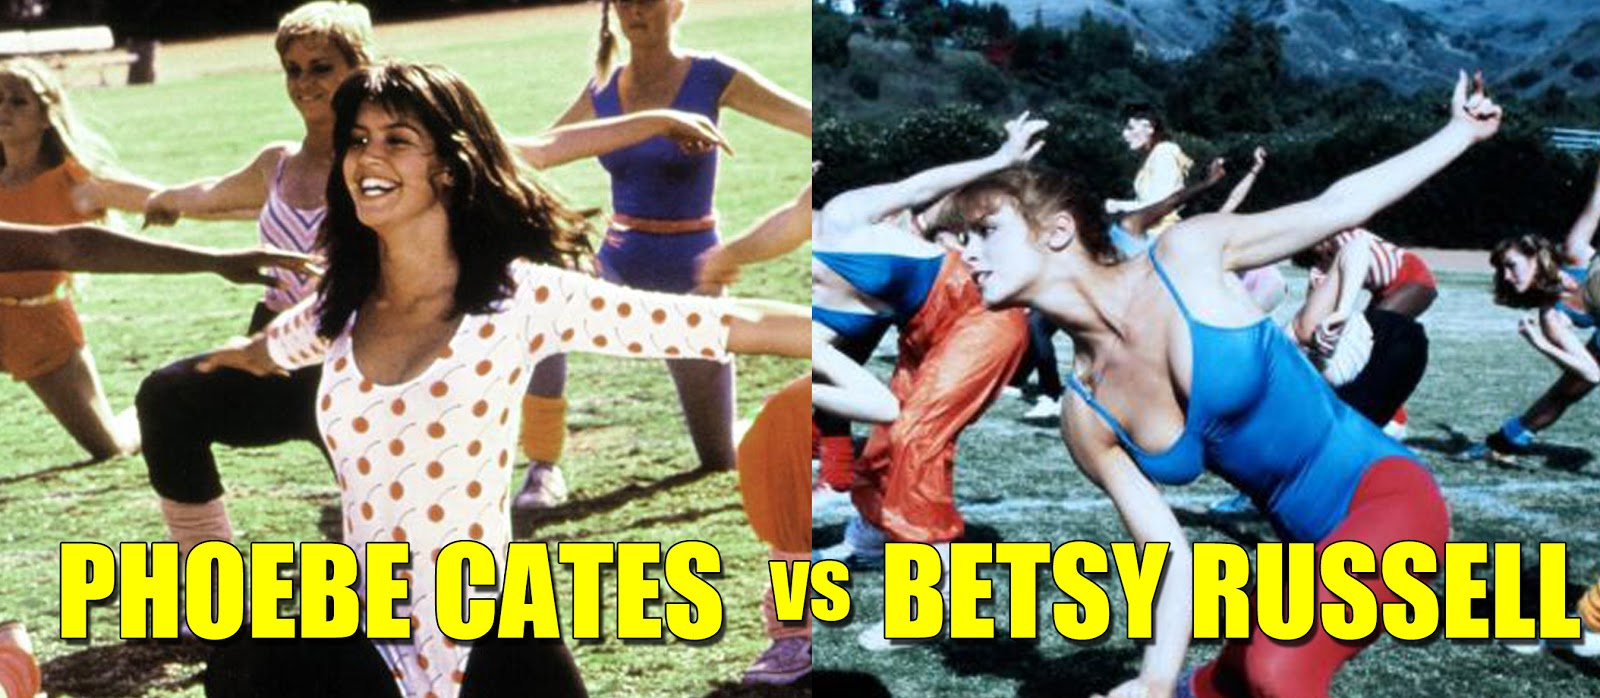 Private School 1983 Phoebe Cates vs Betsy Russell choice